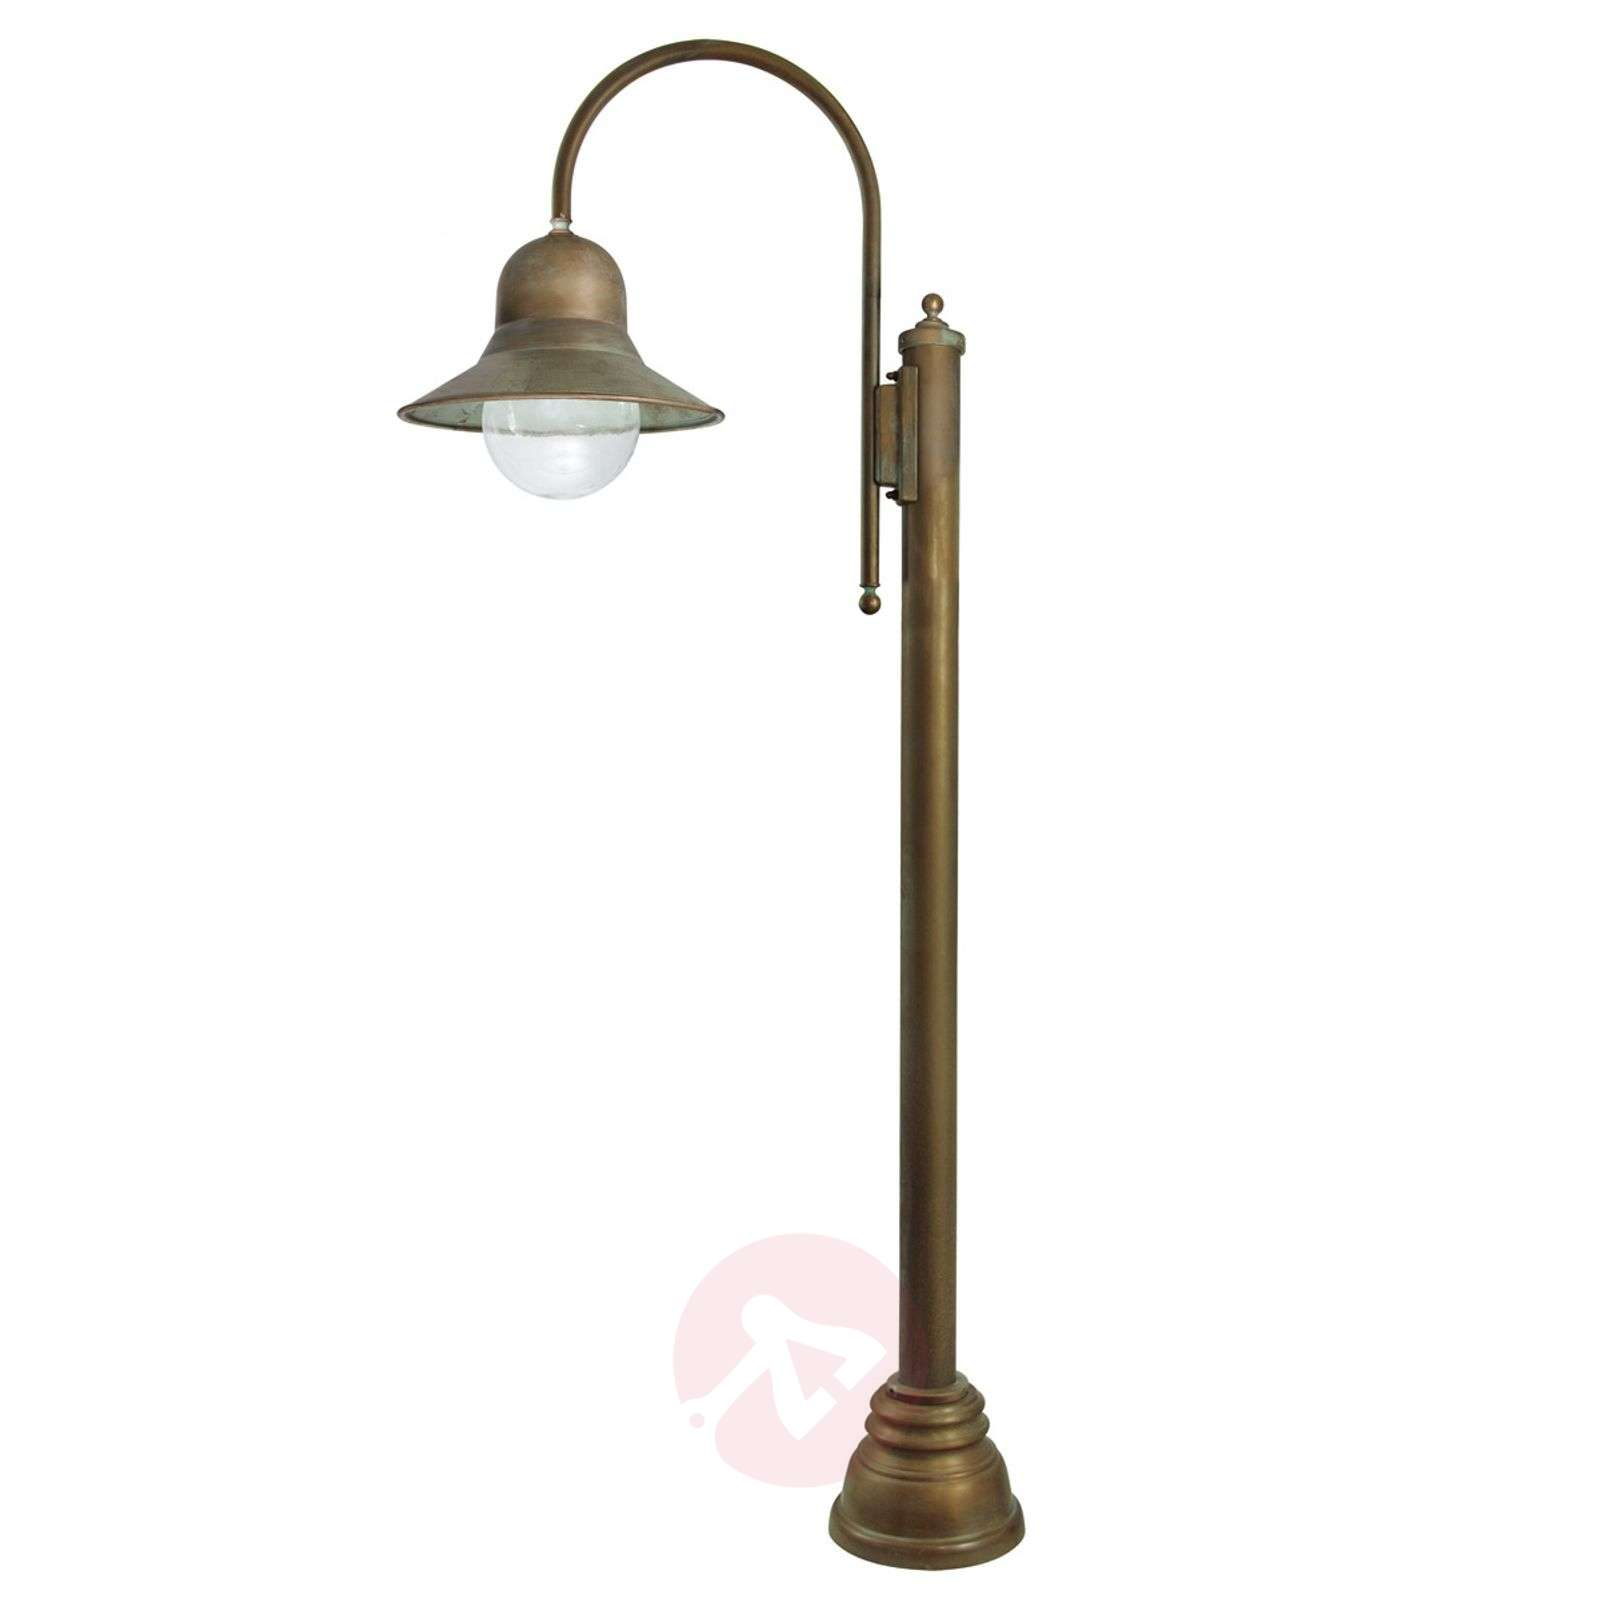 Felizia Mediterranean path light 155 cm-6515295-01